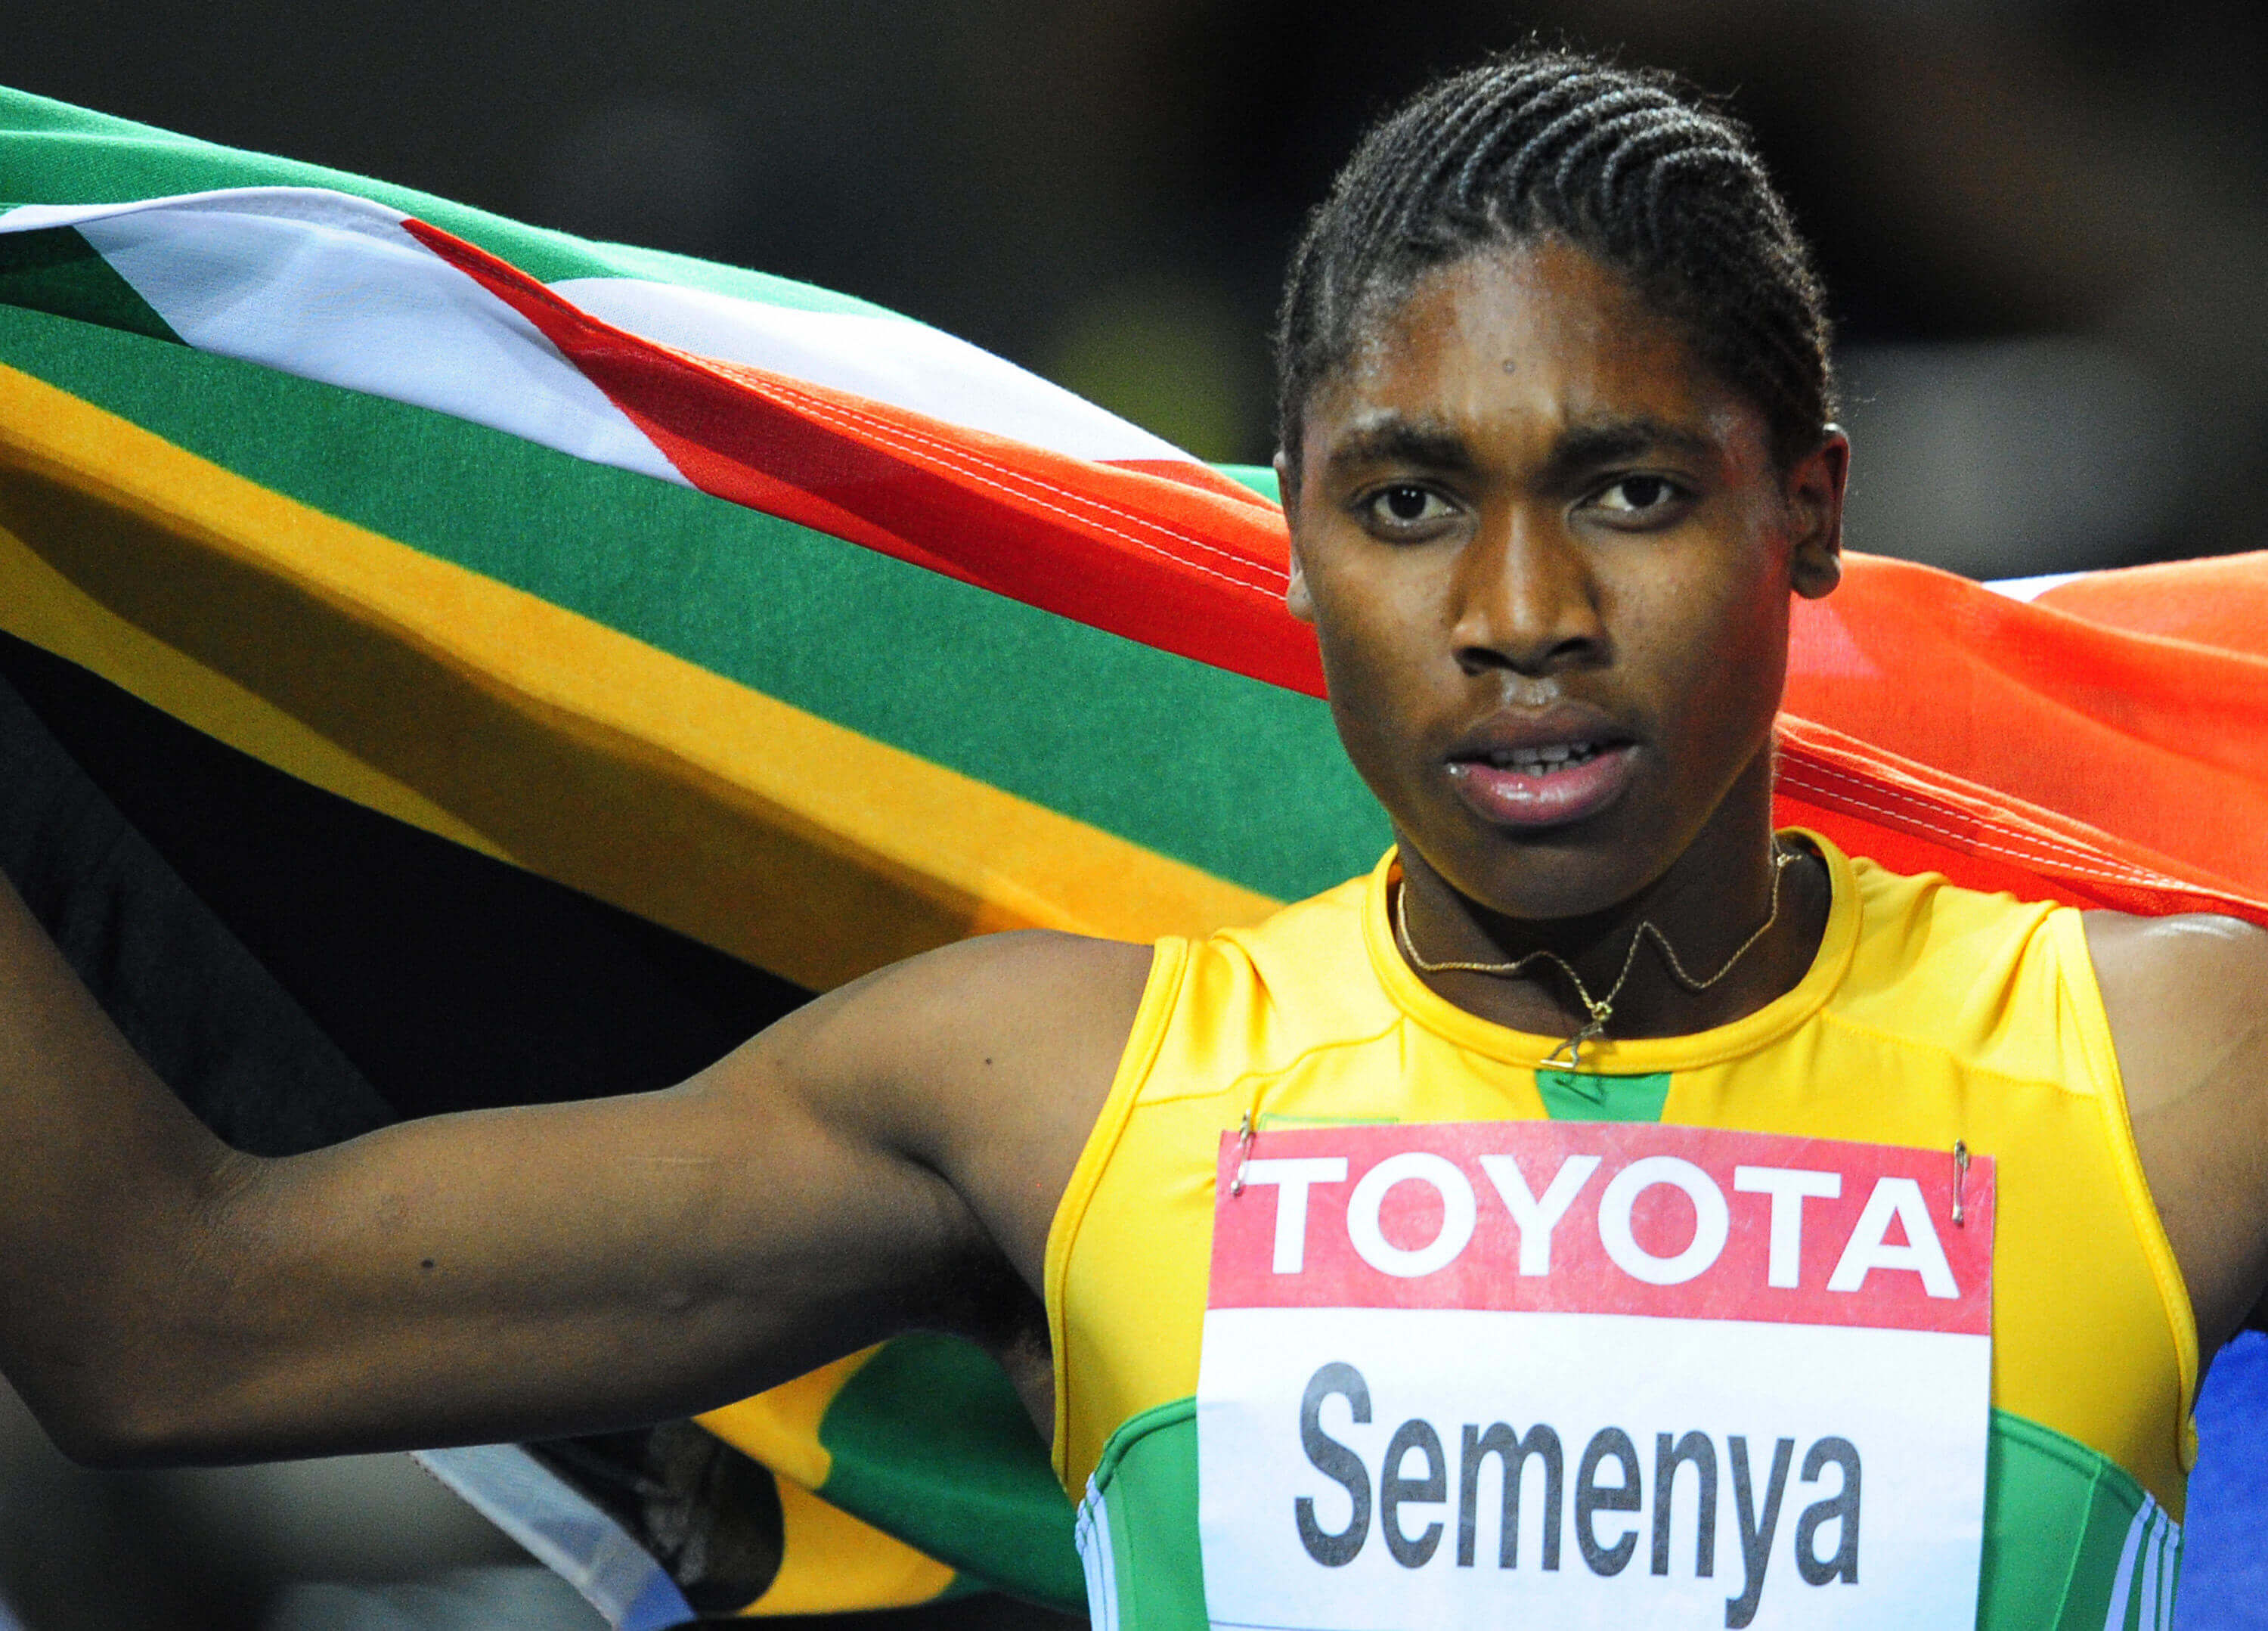 South Africa's Caster Semenya celebrates winning the women's 800m final race of the 2009 IAAF Athletics World Championships on August 19, 2009 in Berlin. AFP PHOTO / FRANCK FIFE (Photo credit should read FRANCK FIFE/AFP/Getty Images)